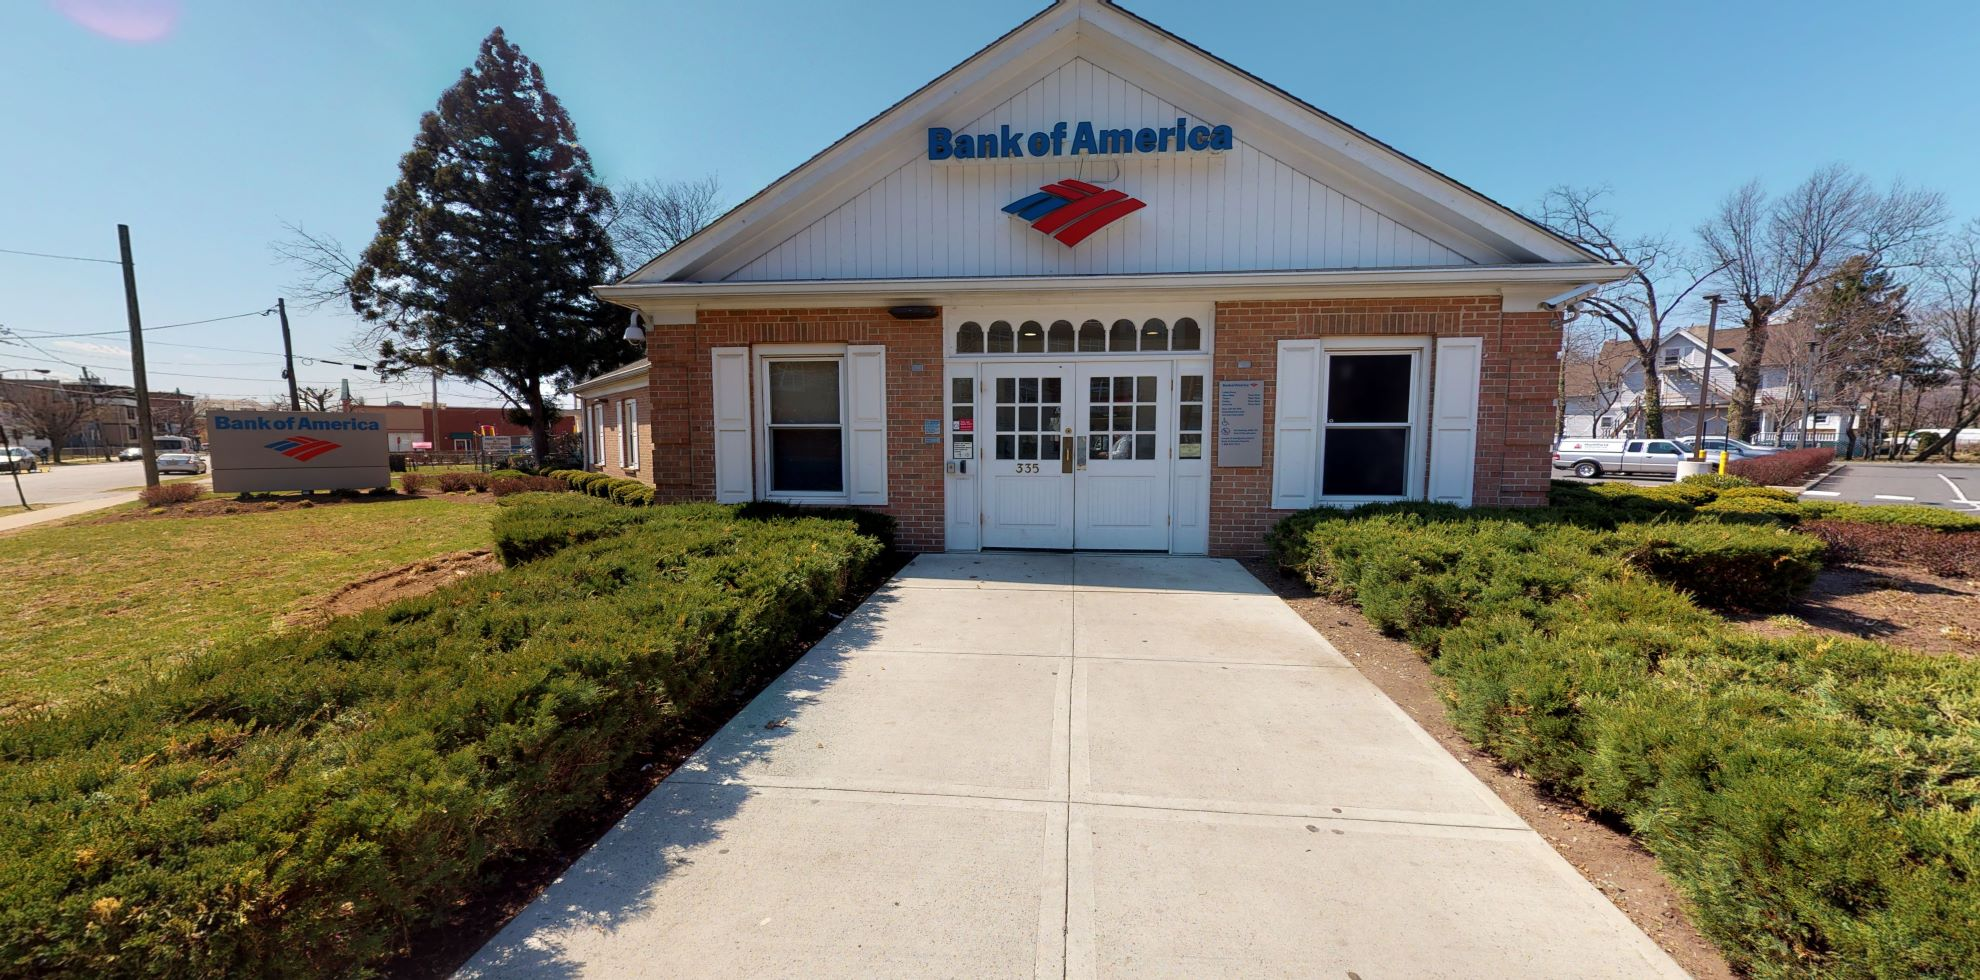 Bank of America financial center with drive-thru ATM | 335 E Front St, Plainfield, NJ 07060